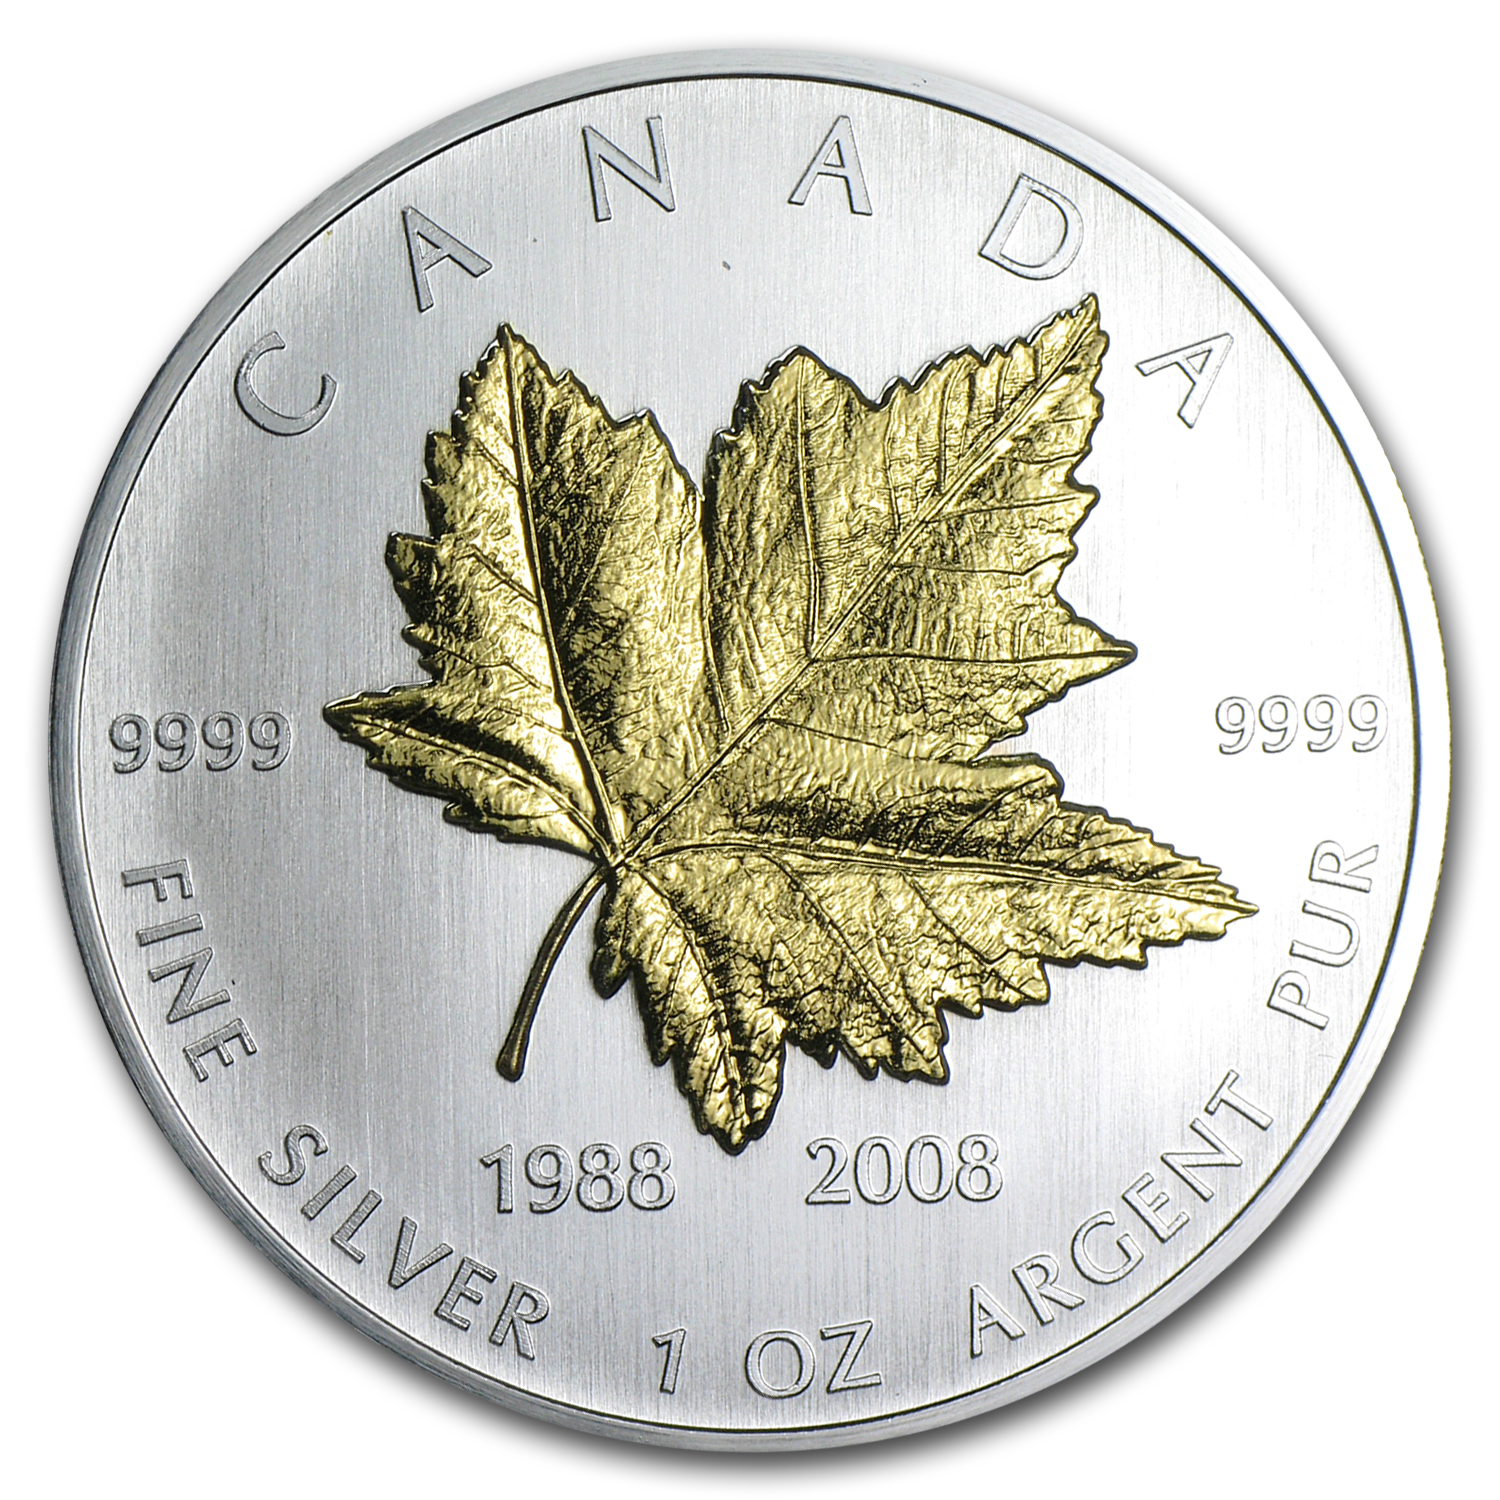 2008 Canada 1 oz Silver $5 Maple Leaf 20th Anniversary (Gilded)